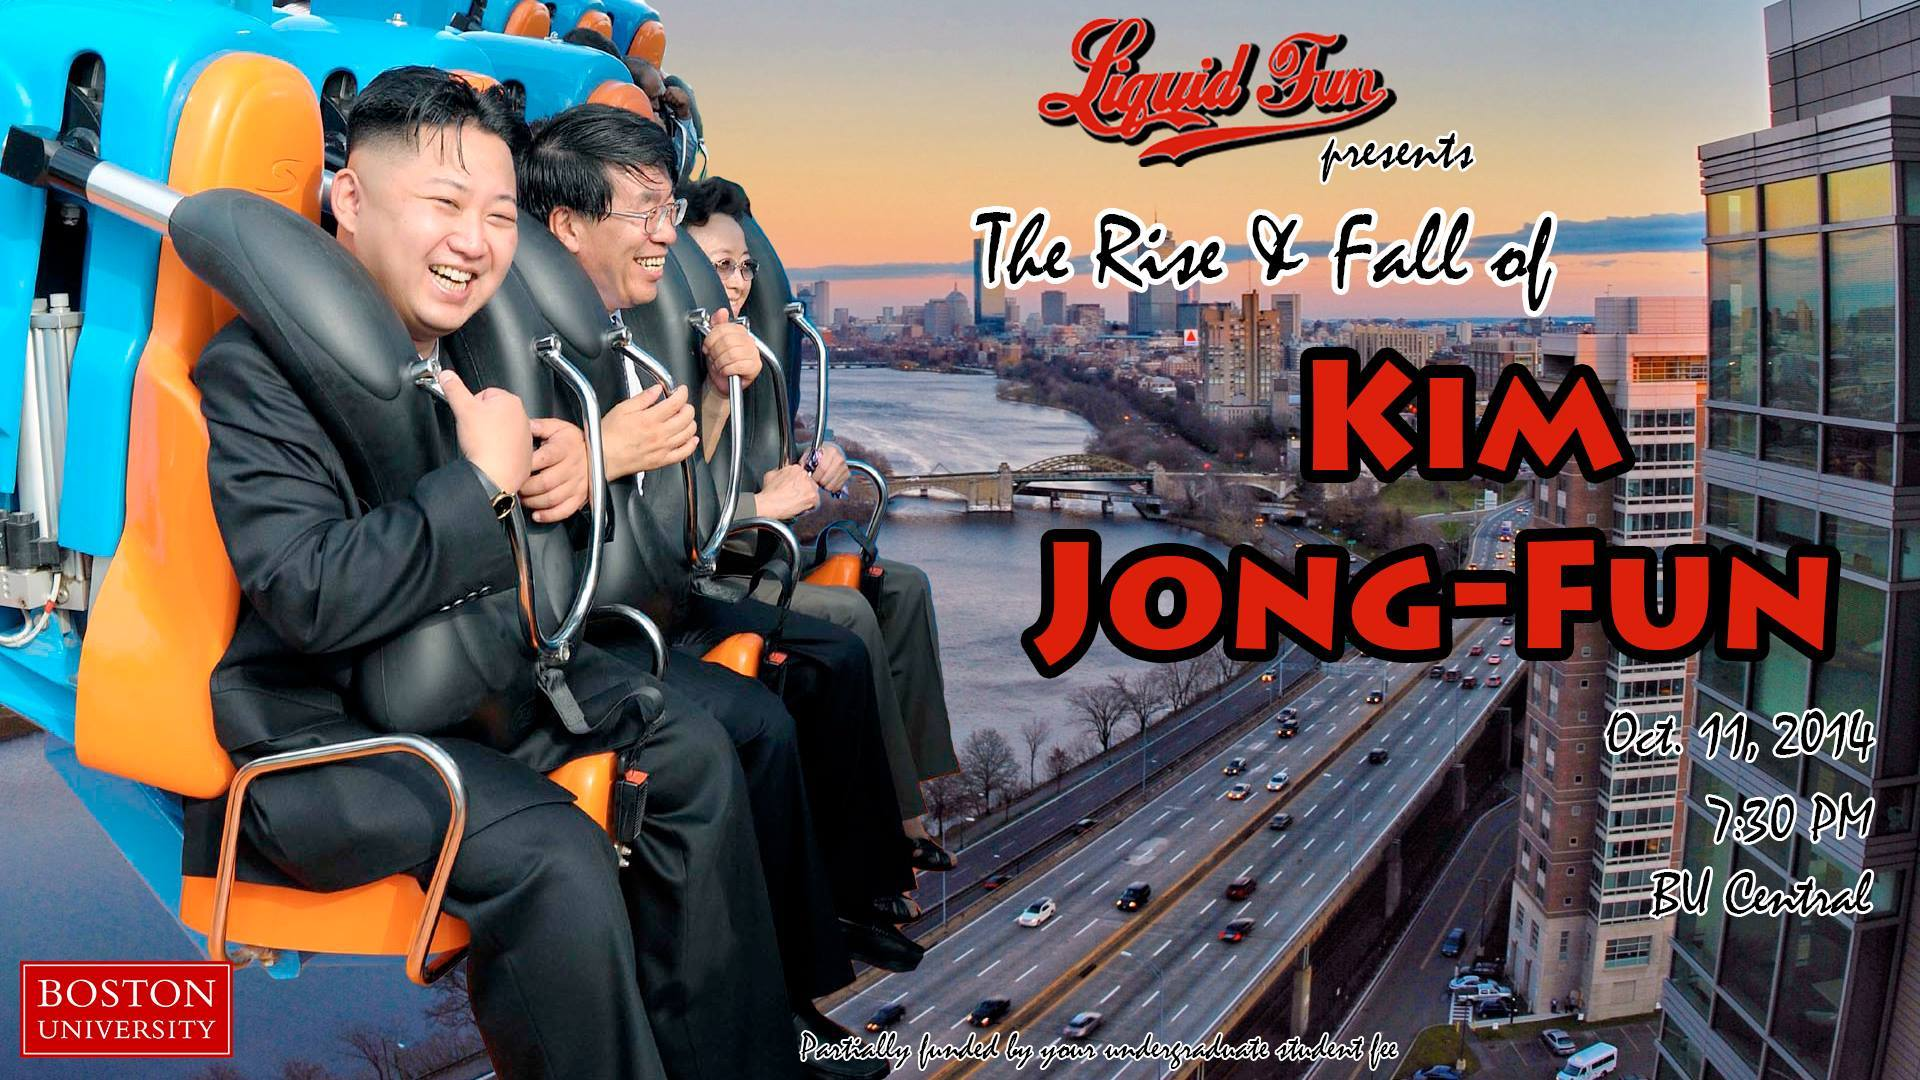 The Rise and Fall of Kim Jong-Fun